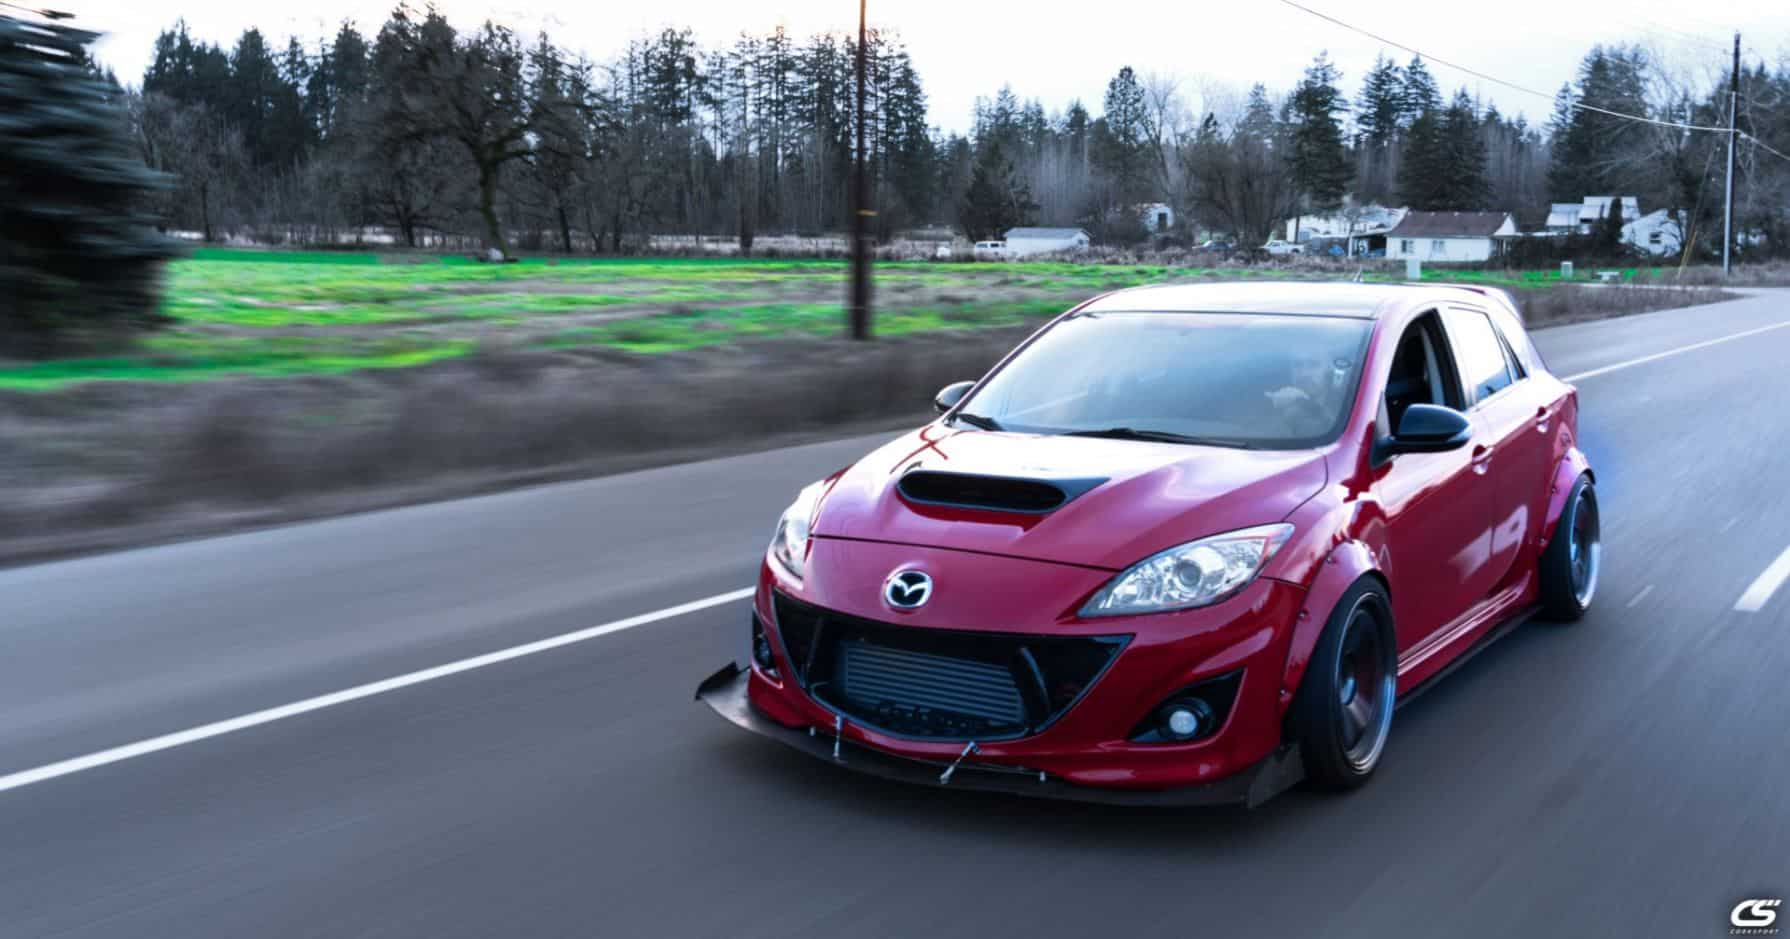 Mazda and mazdaspeed performance blog for Mazdaspeed 6 exterior mods